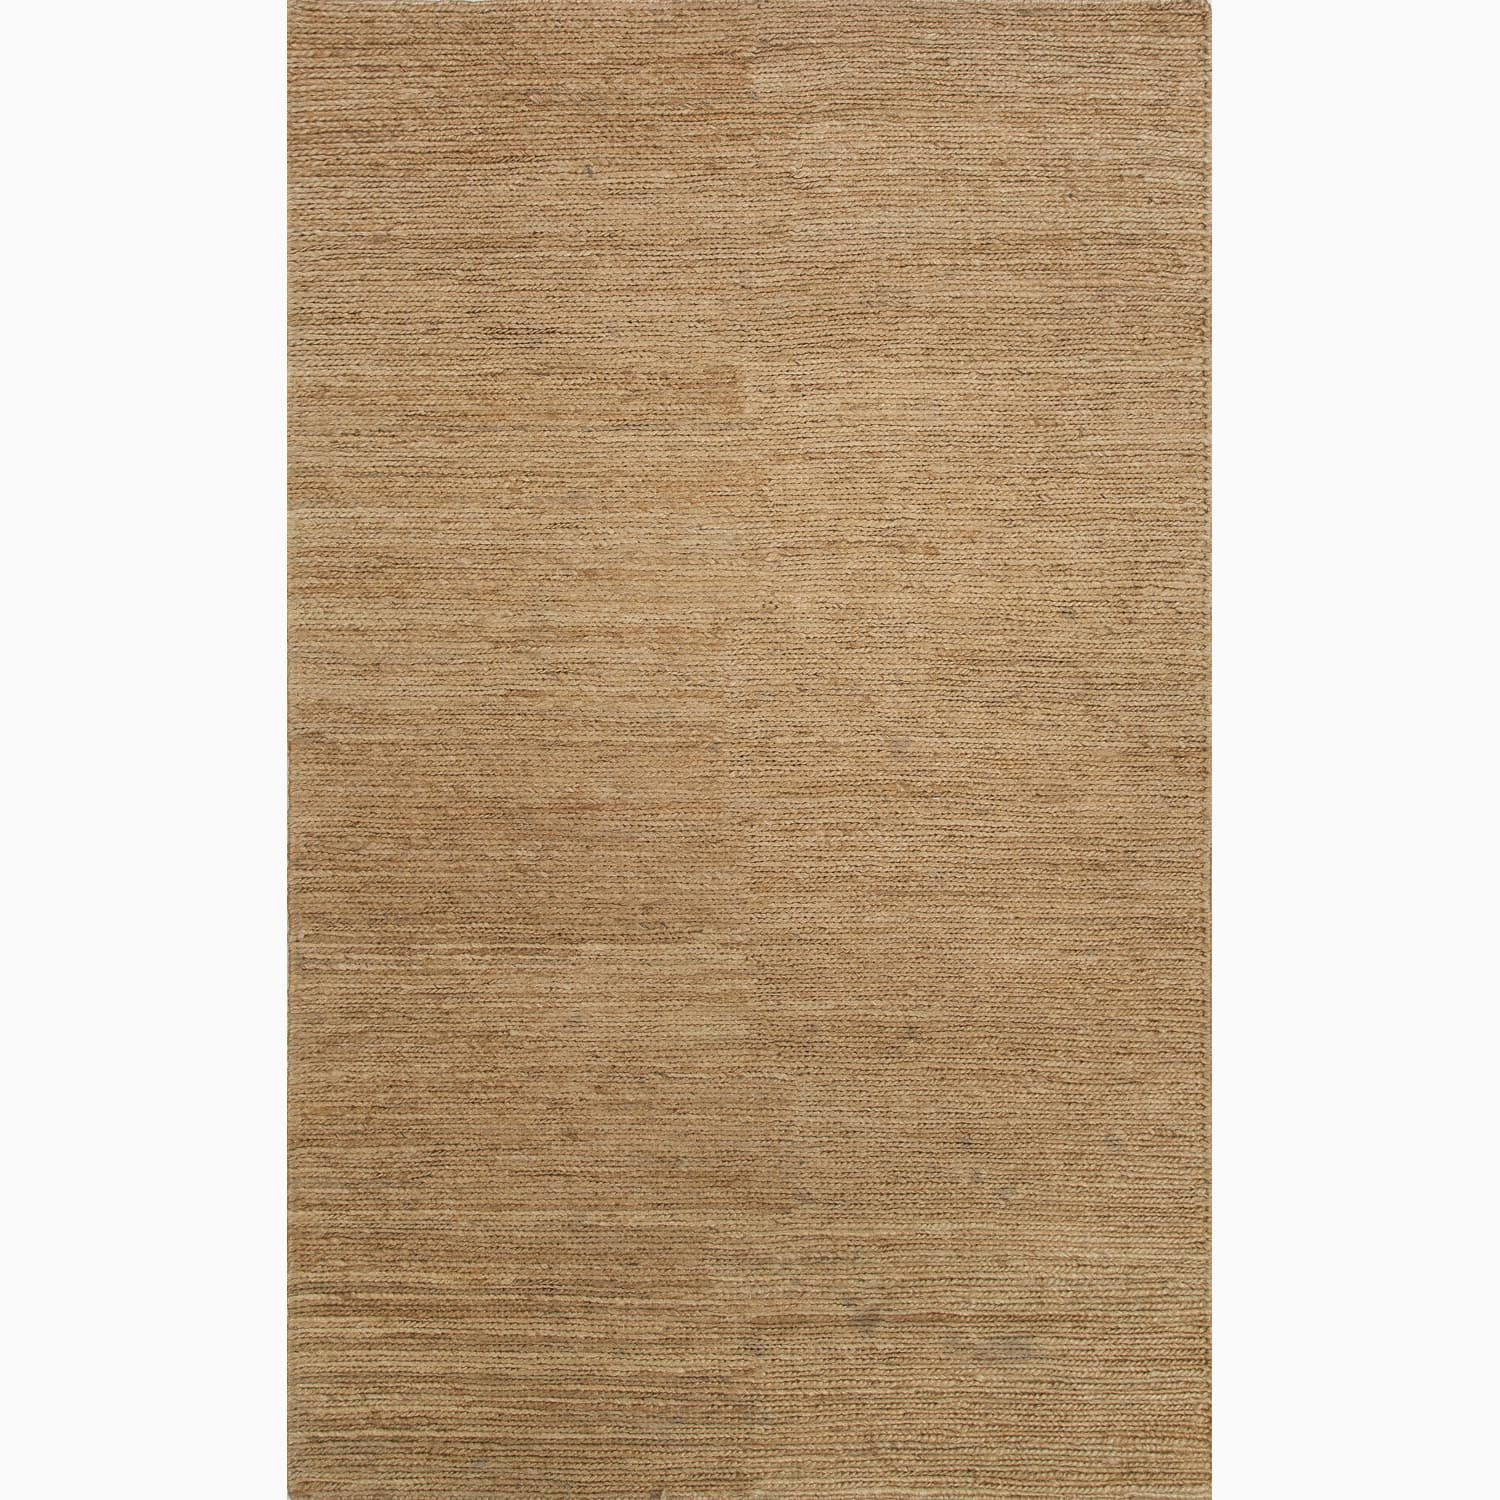 Handmade Contemporary Taupe/ Tan Hemp Eco-friendly Rug (8' x 10')